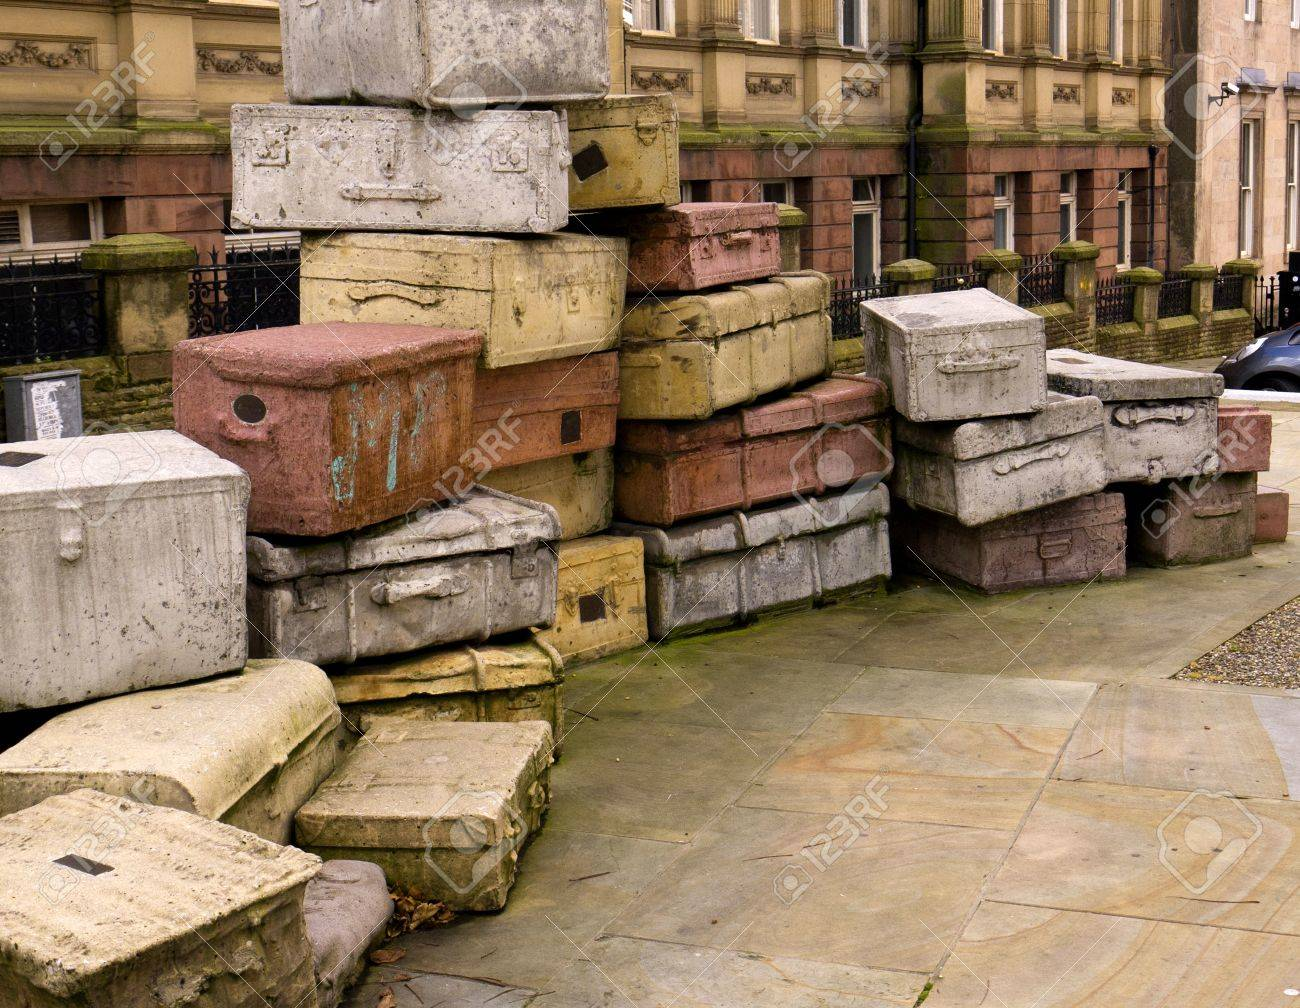 Sculpture called Case Study in the street in Liverpool England Stock Photo - 15664678